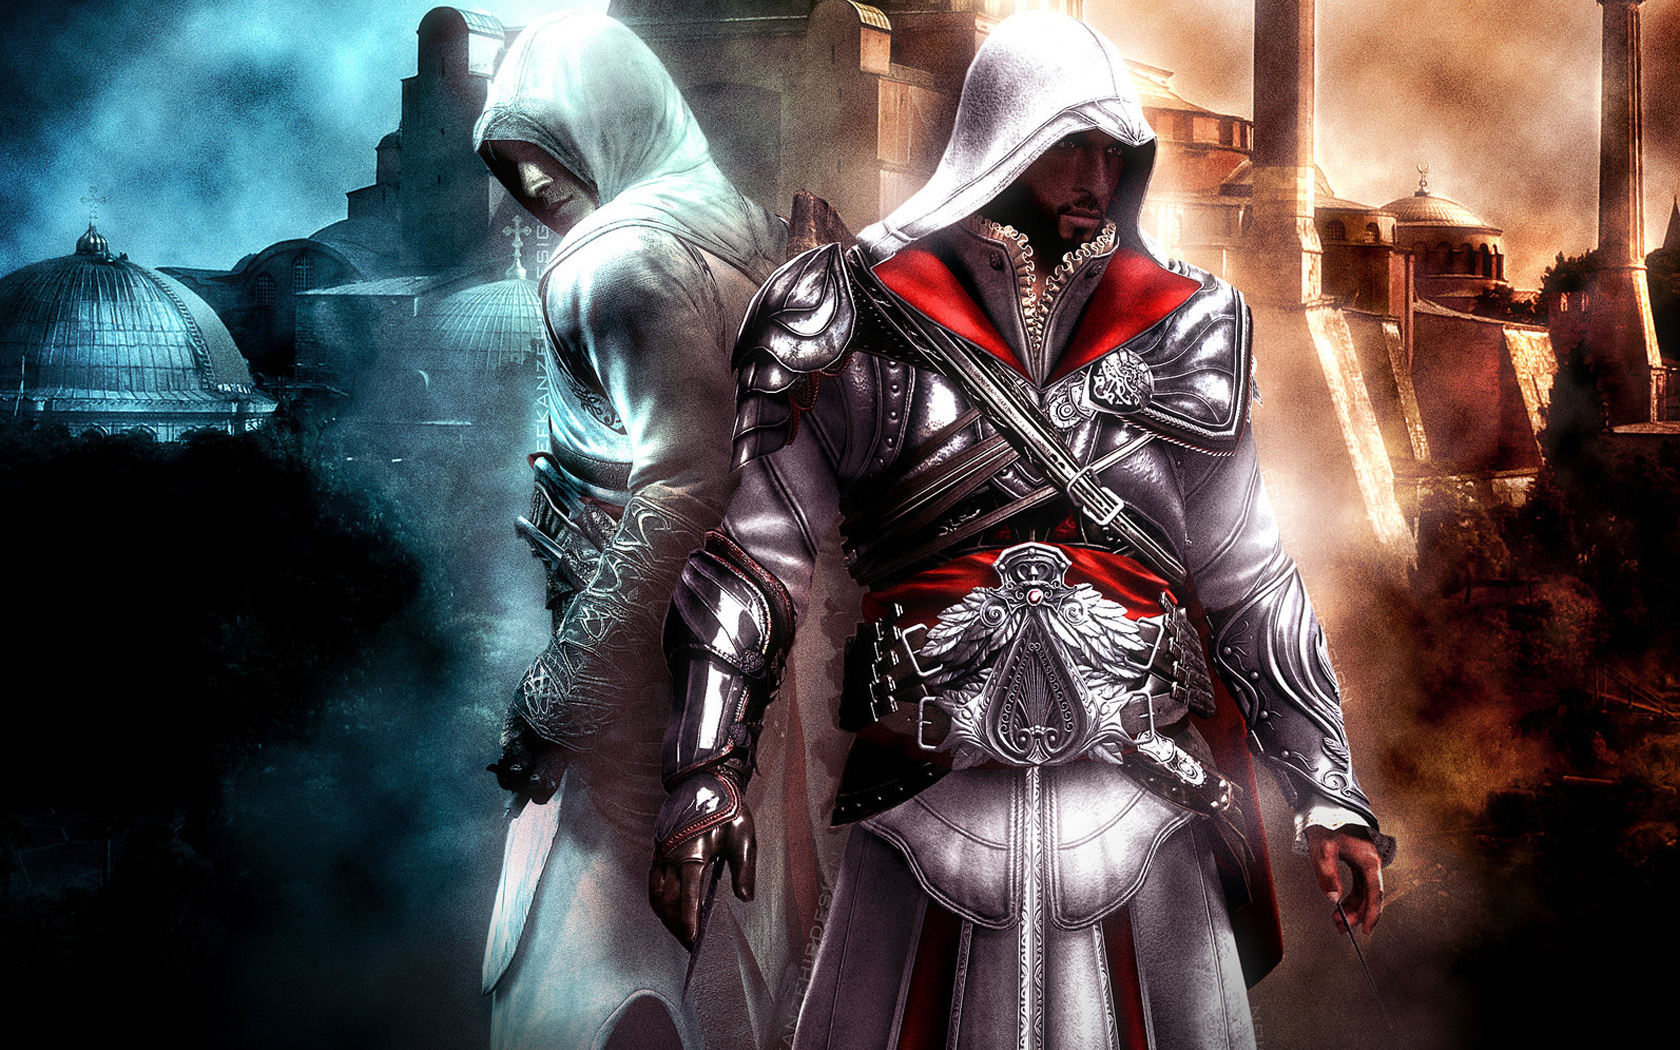 Awesome Assassin's Creed Wallpapers - WallpaperSafari